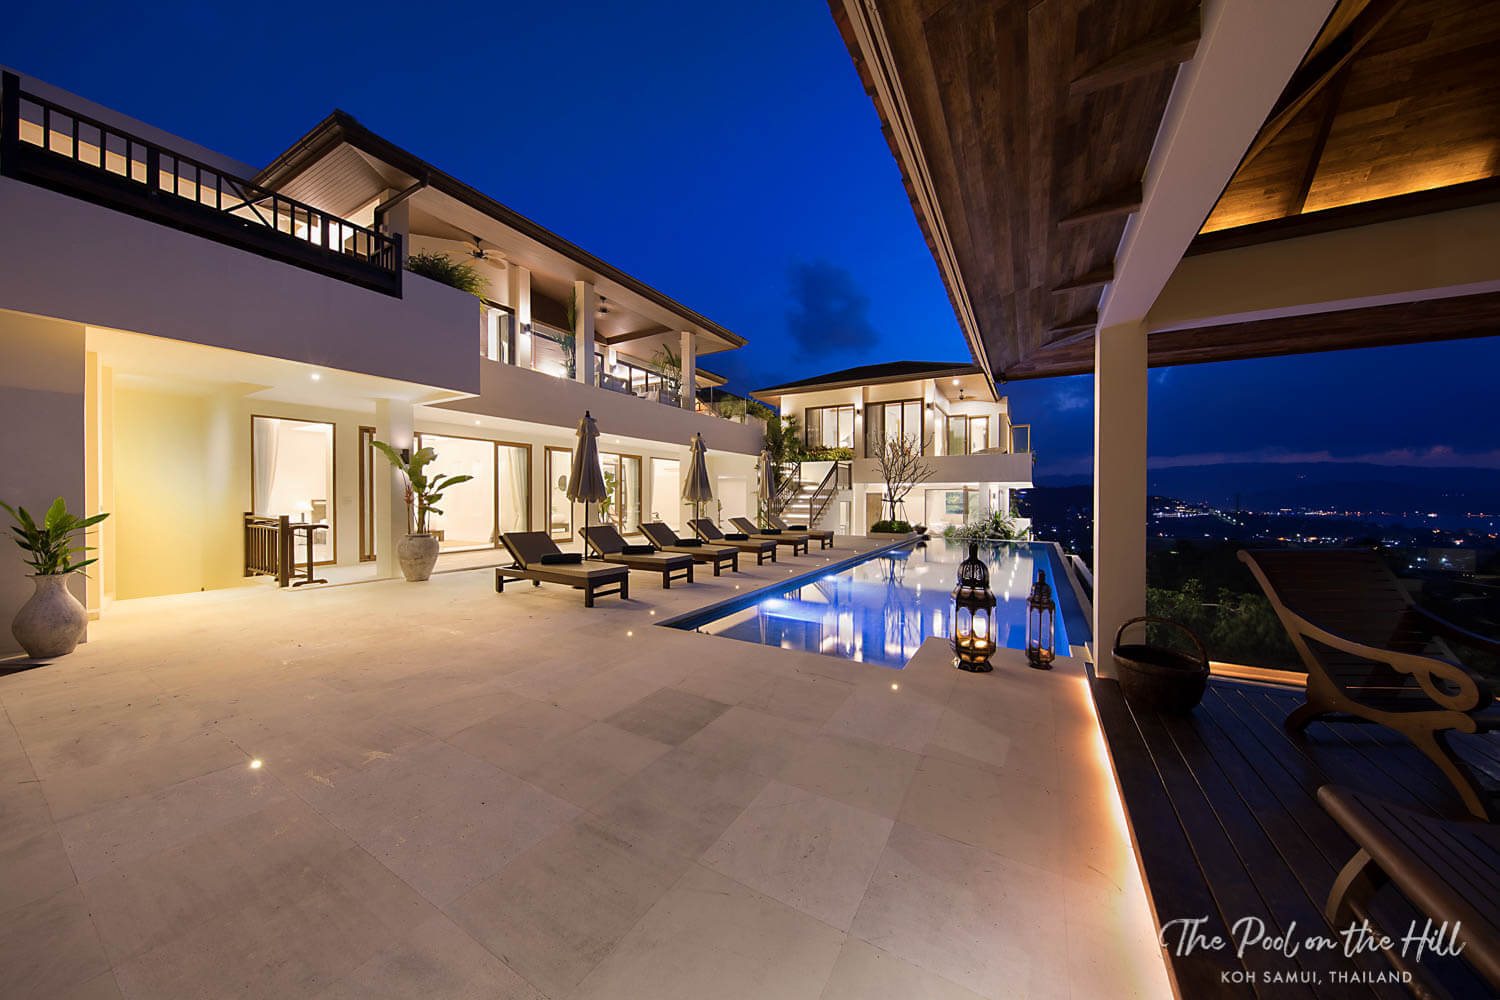 Koh Samui Eco Villa: Discover The Pool on the Hill's best eco features including solar power and LED lighting